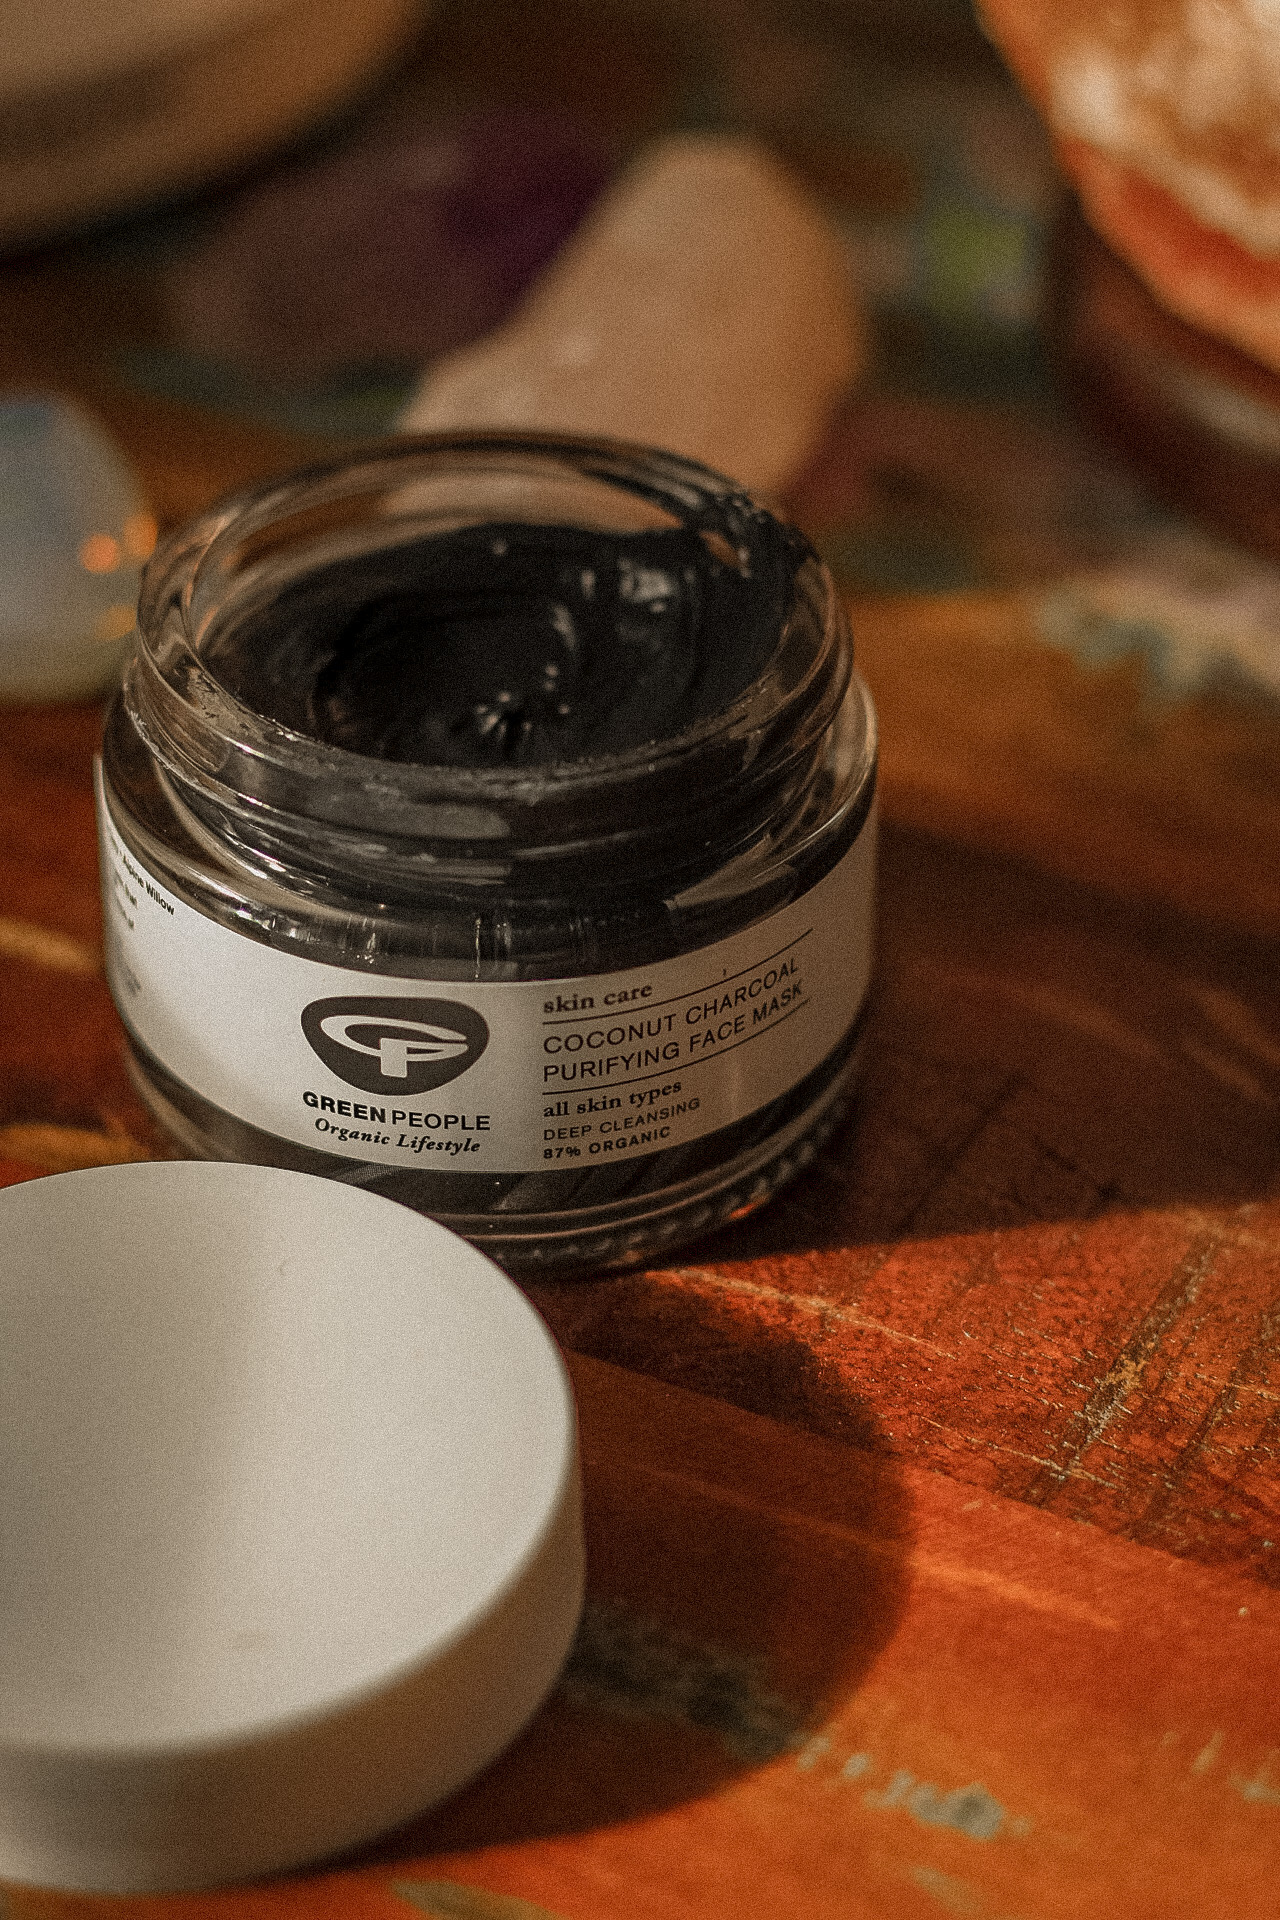 Green People Coconut Charcoal Purifying Face Mask | REVIEW